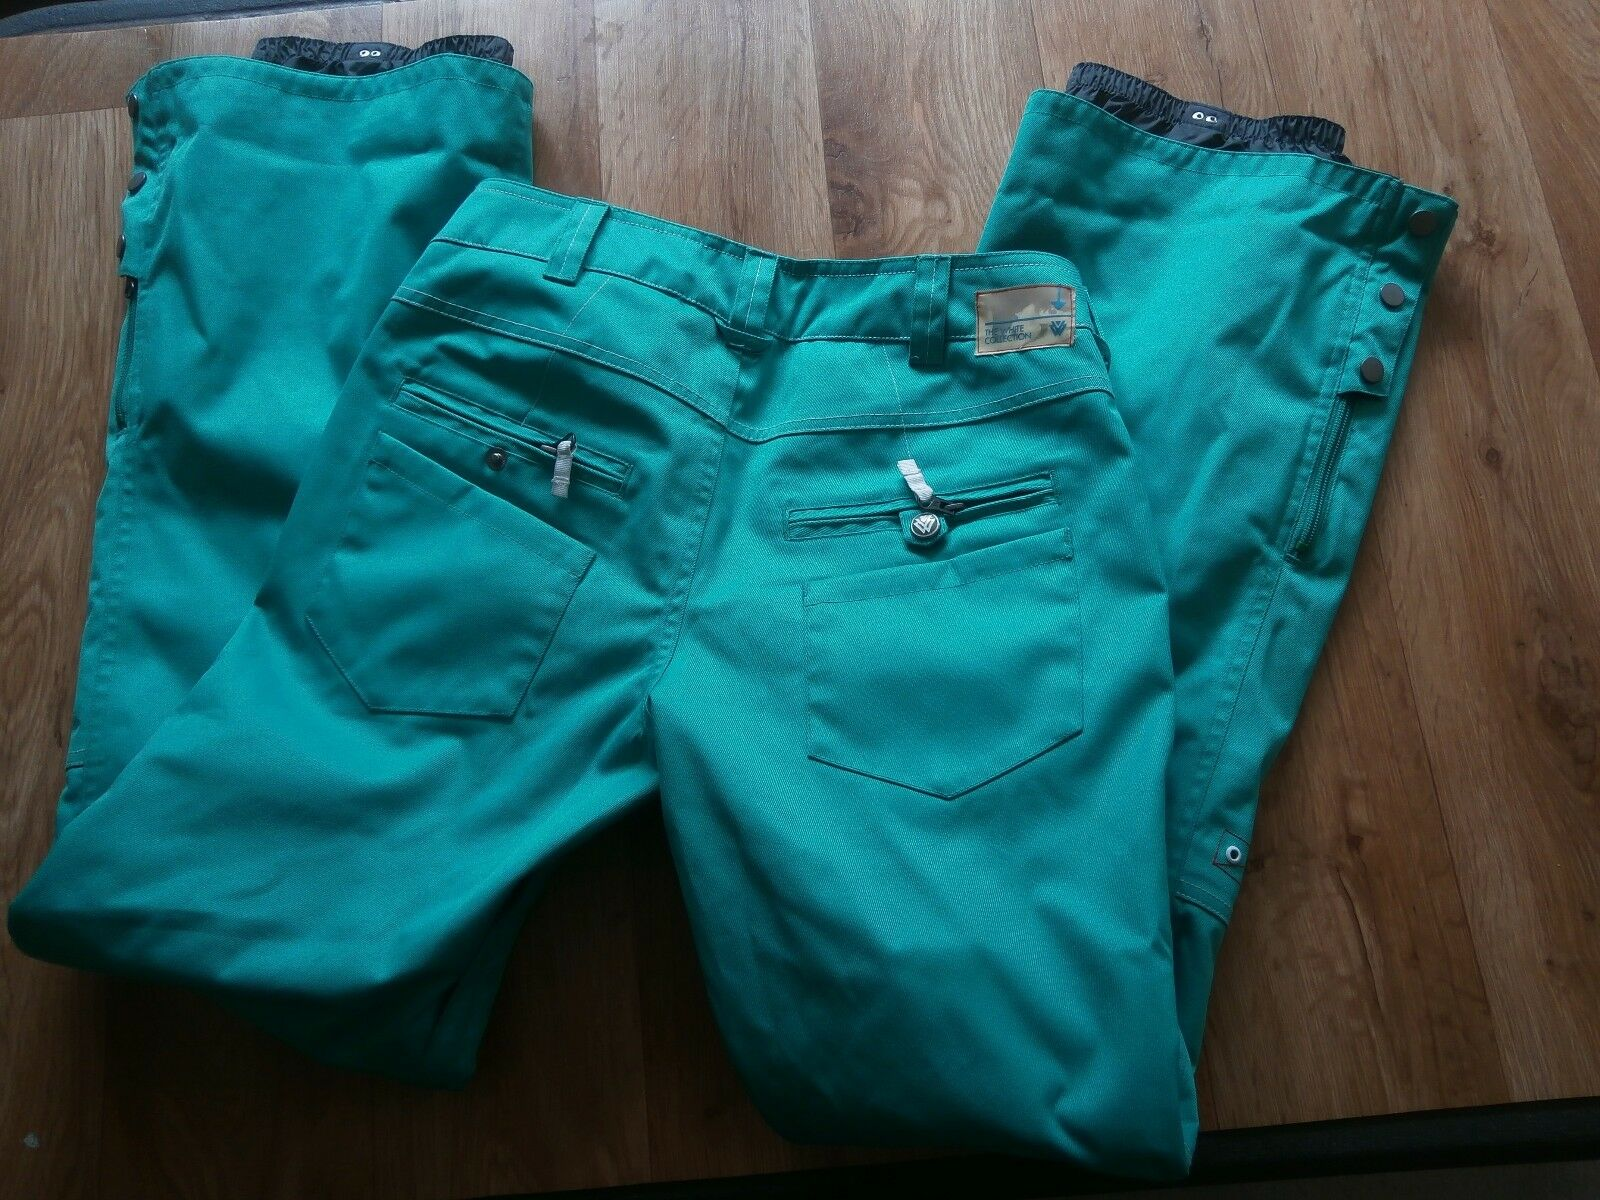 Burton The White Collection Dry Ride Snowboarding Skinny Pants Size XS,